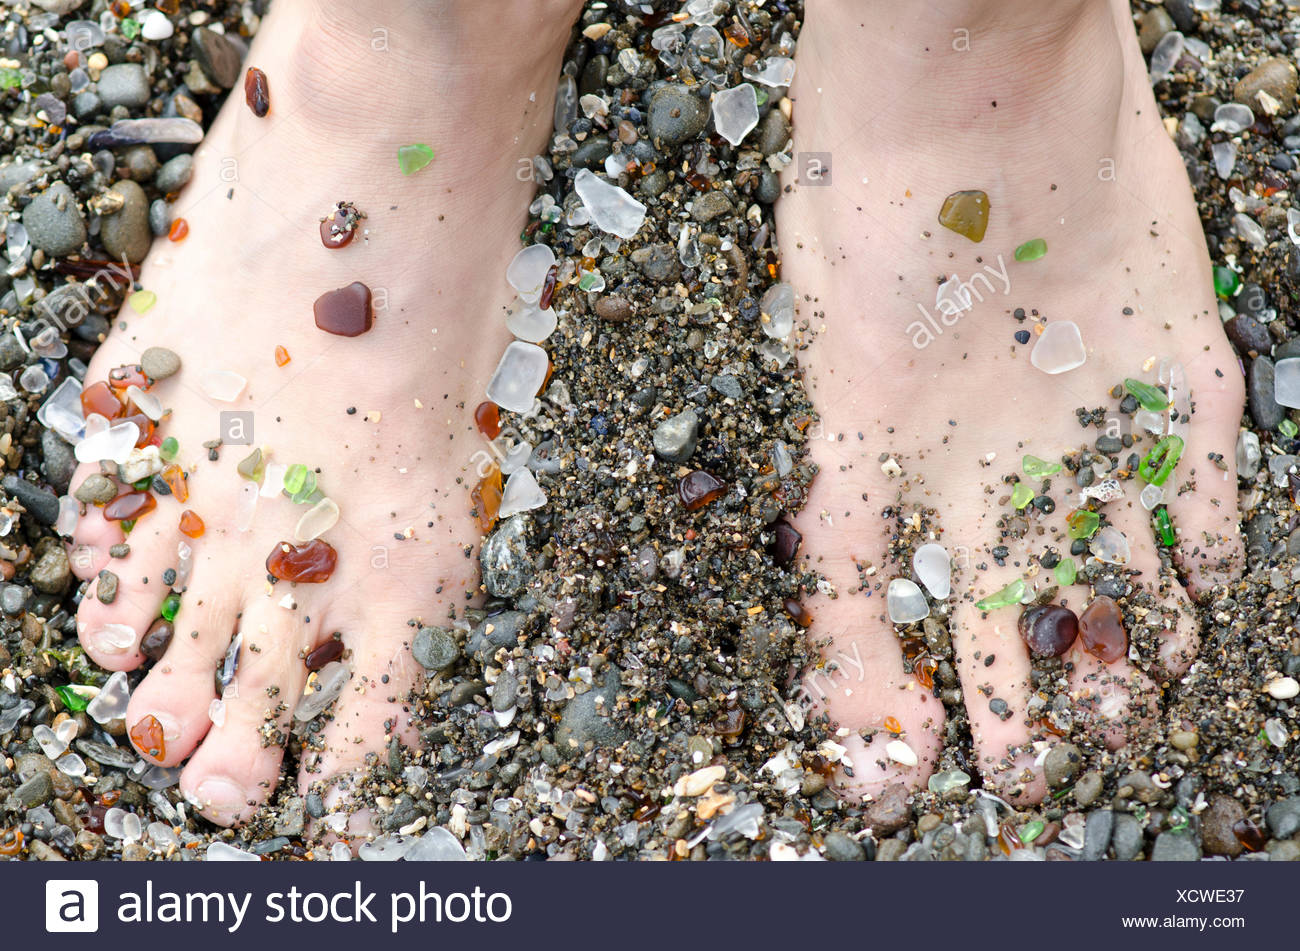 A mans feet are covered in glass from the handfuls of beach glass that wash ashore at Glass Beach in Fort Bragg, California. - Stock Image